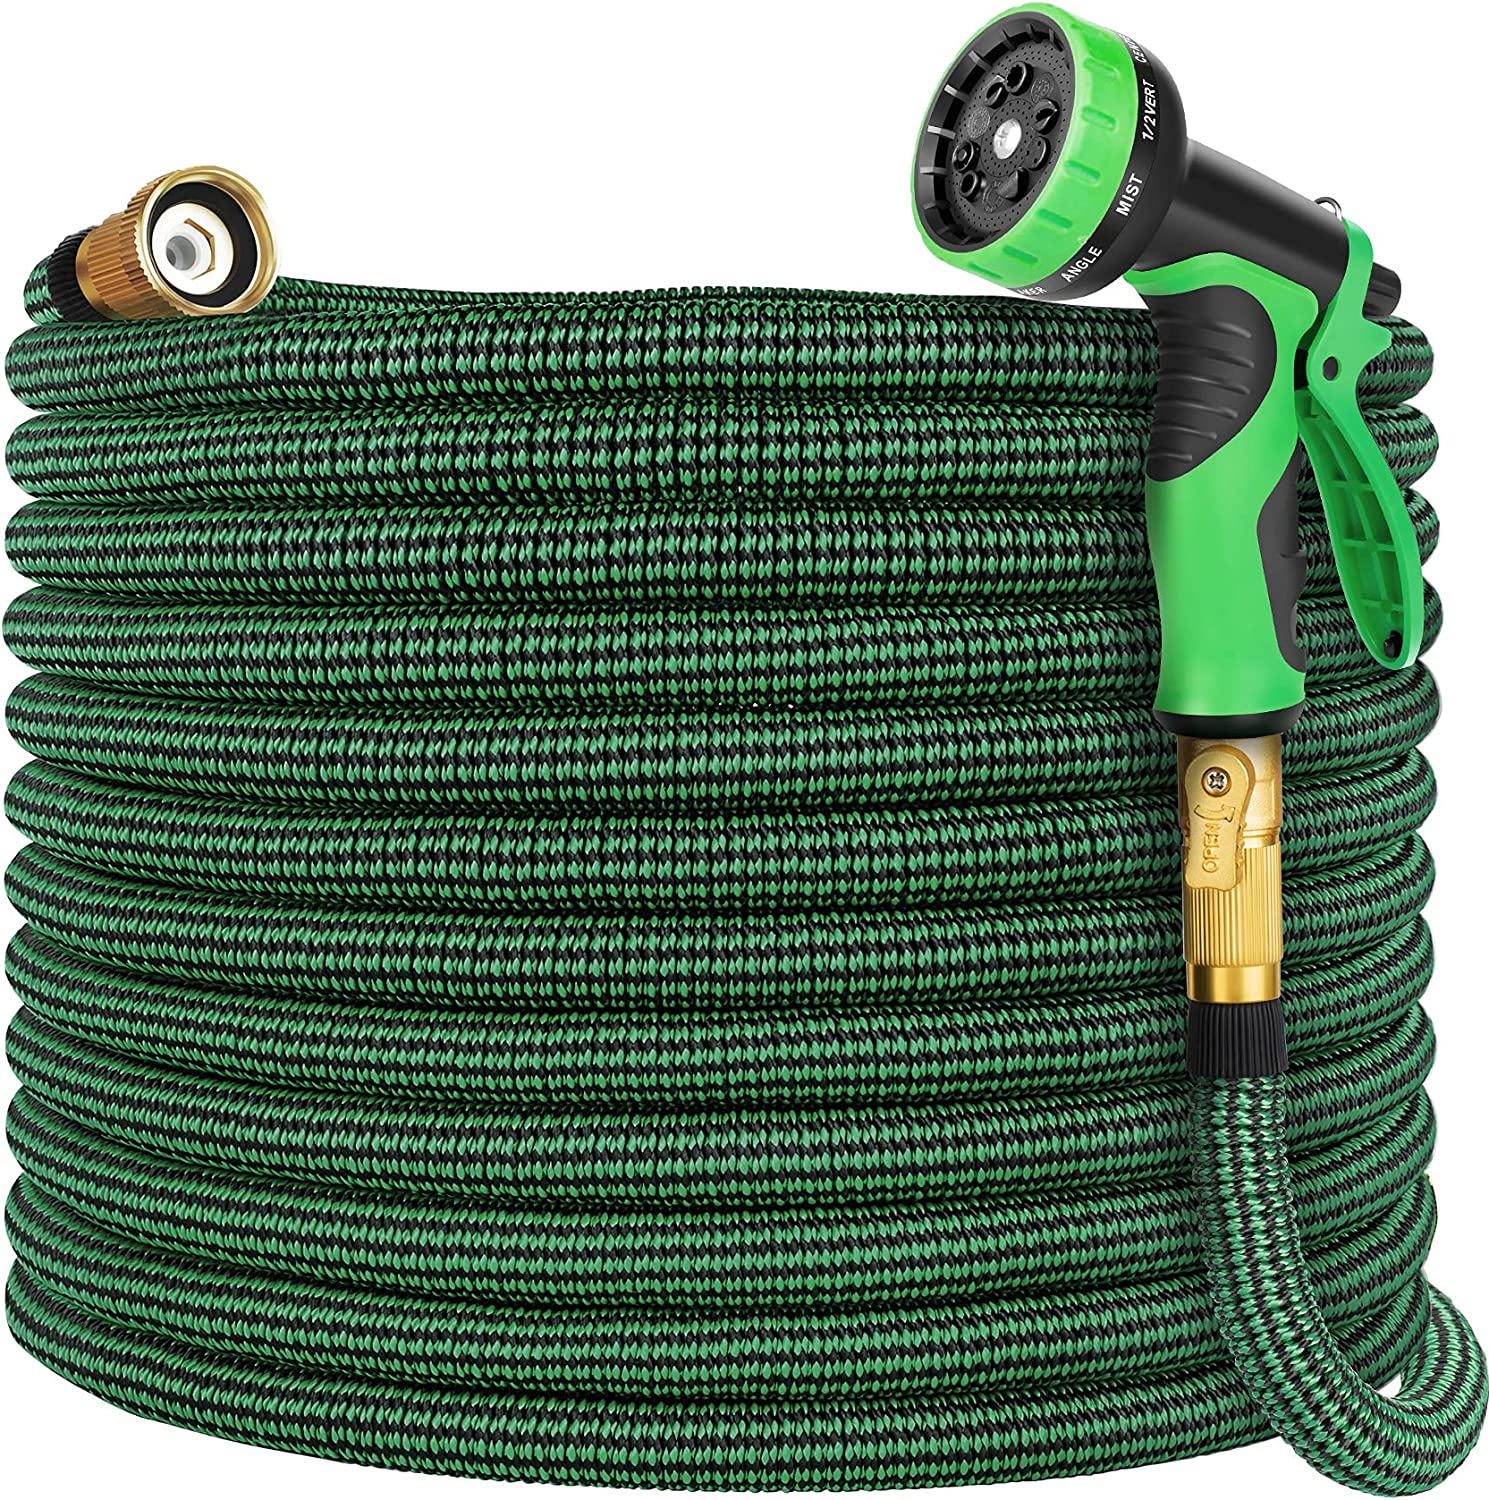 Vezane Garden Hose 50ft, Water Hose with 10 Function Nozzle and Durable 4 Layers Latex, Lightweight Expandable Hose for Garden Watering, No-Kink Flexible Hose for Car Washing